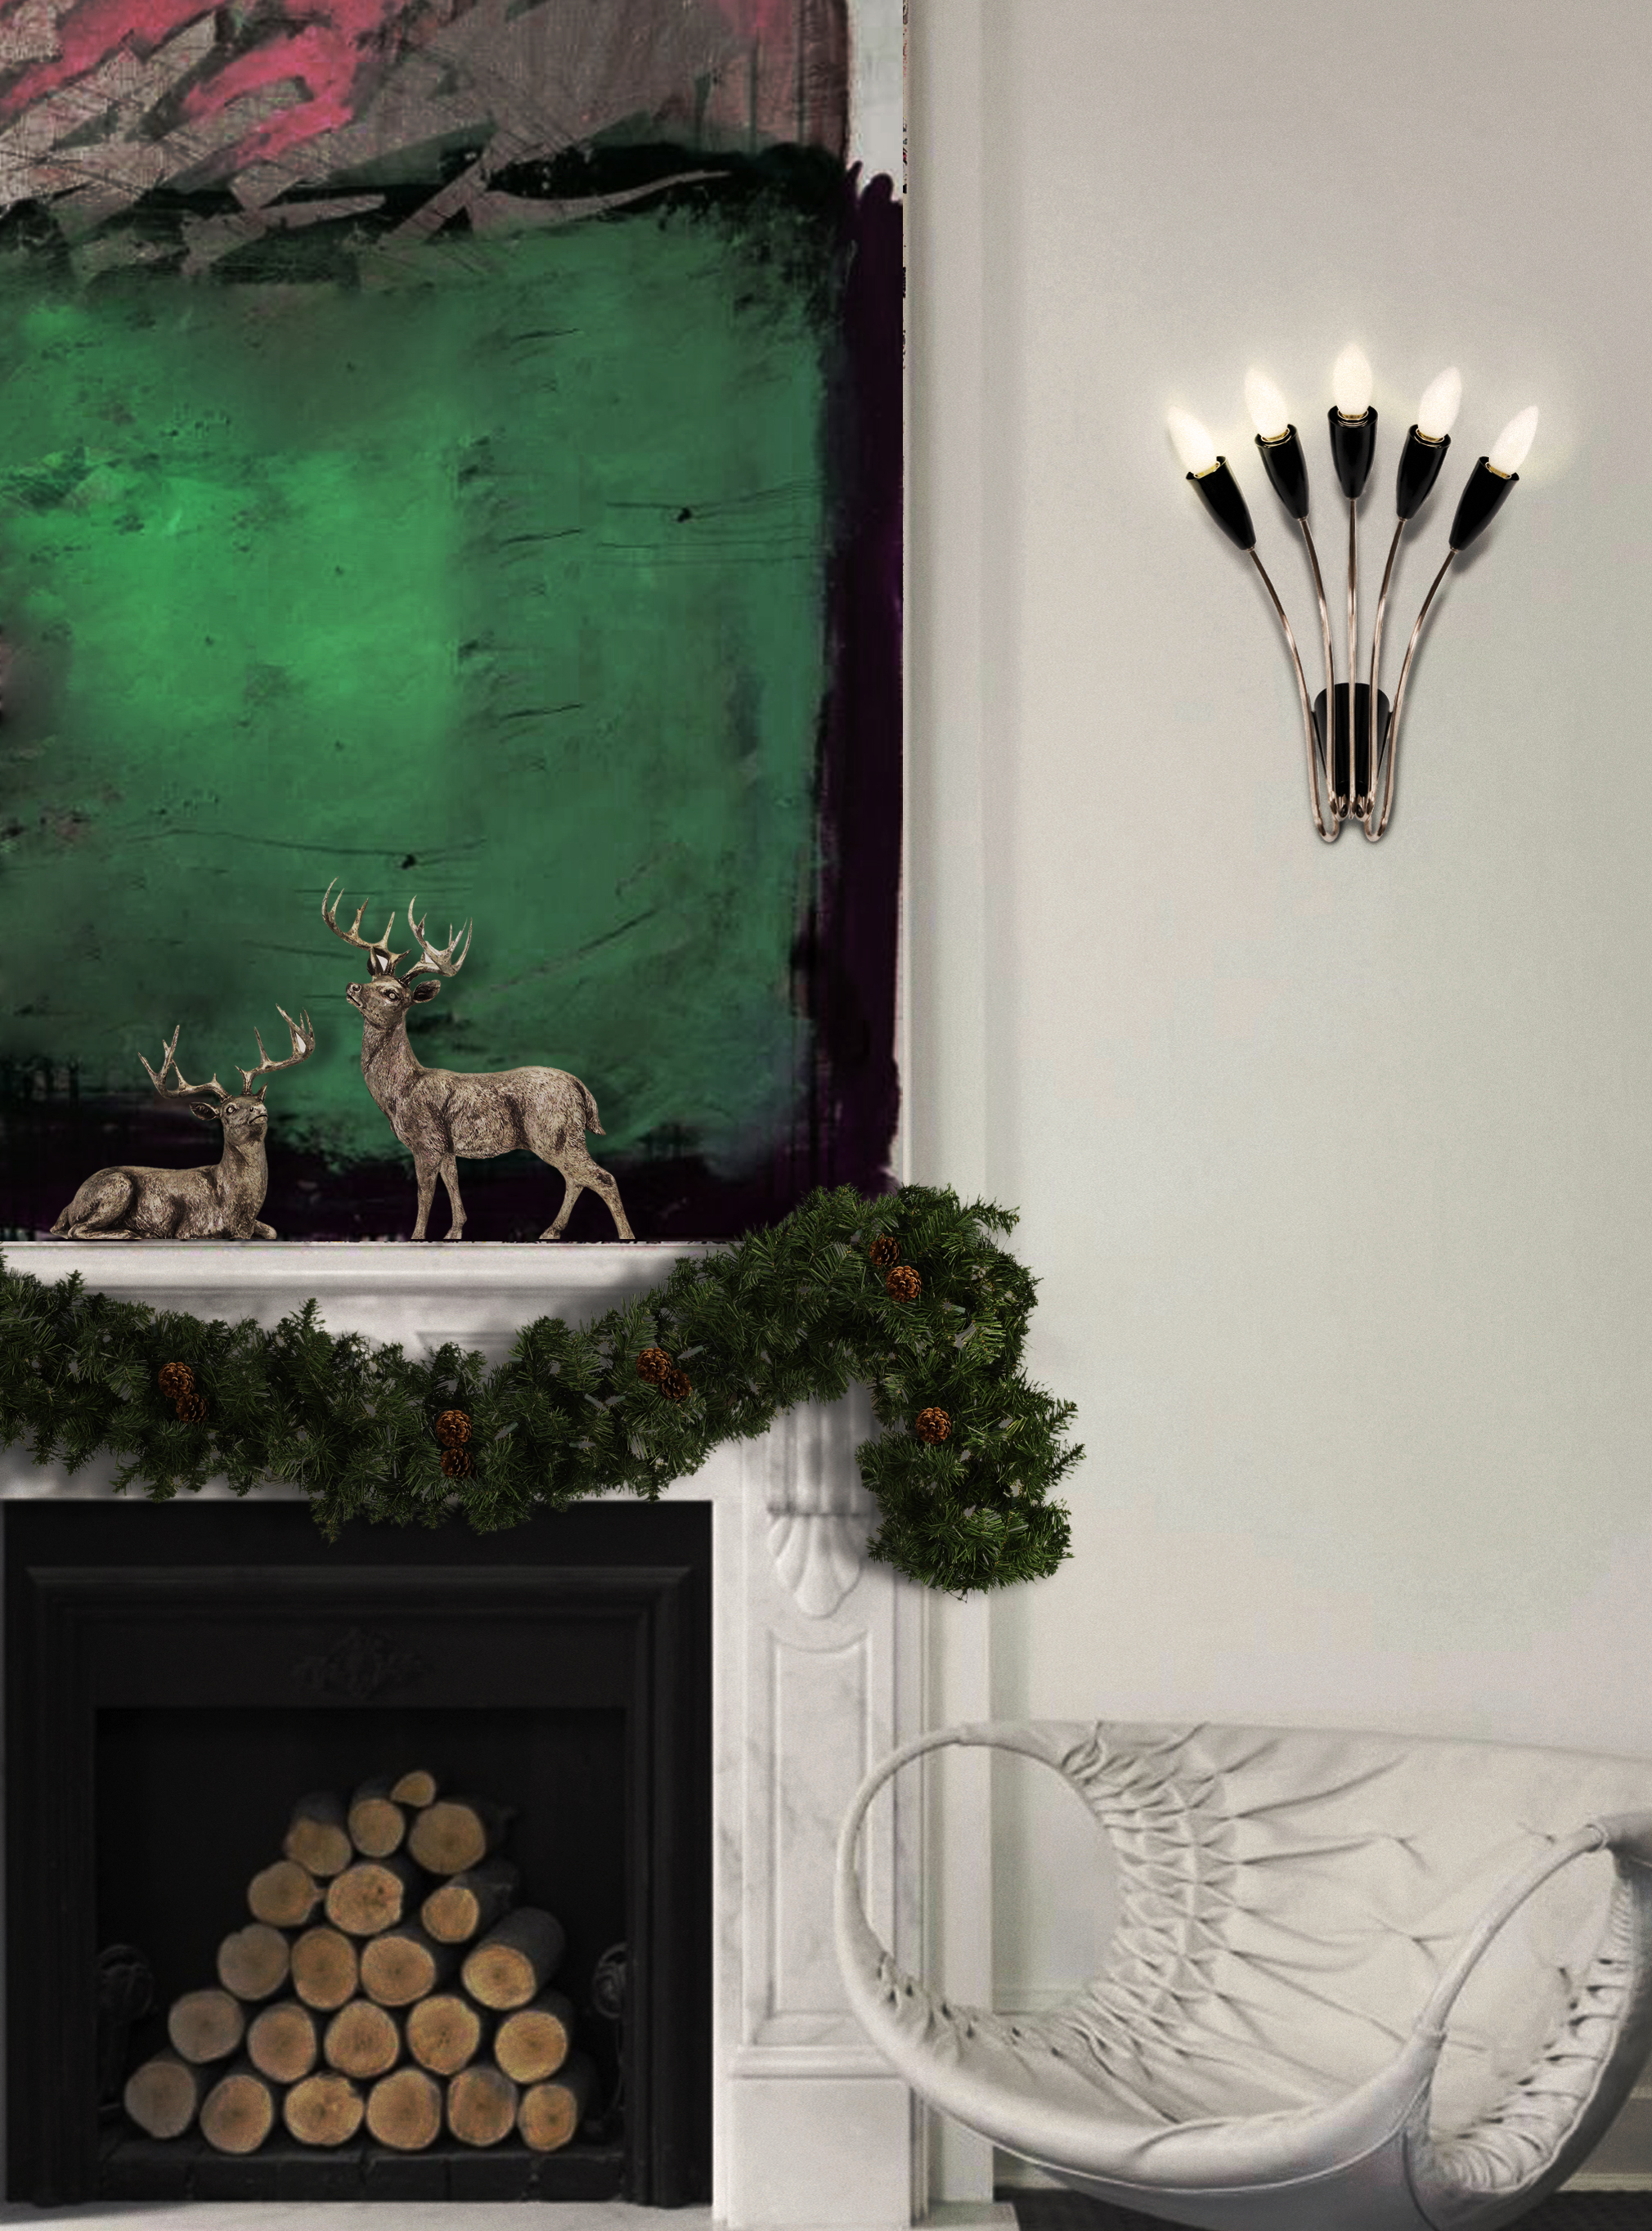 How To Make Your Christmas Living Room Decor Look Like A Million Bucks_1 christmas living room decor How To Make Your Christmas Living Room Decor Look Like A Million Bucks How To Make Your Christmas Living Room Decor Look Like A Million Bucks 3